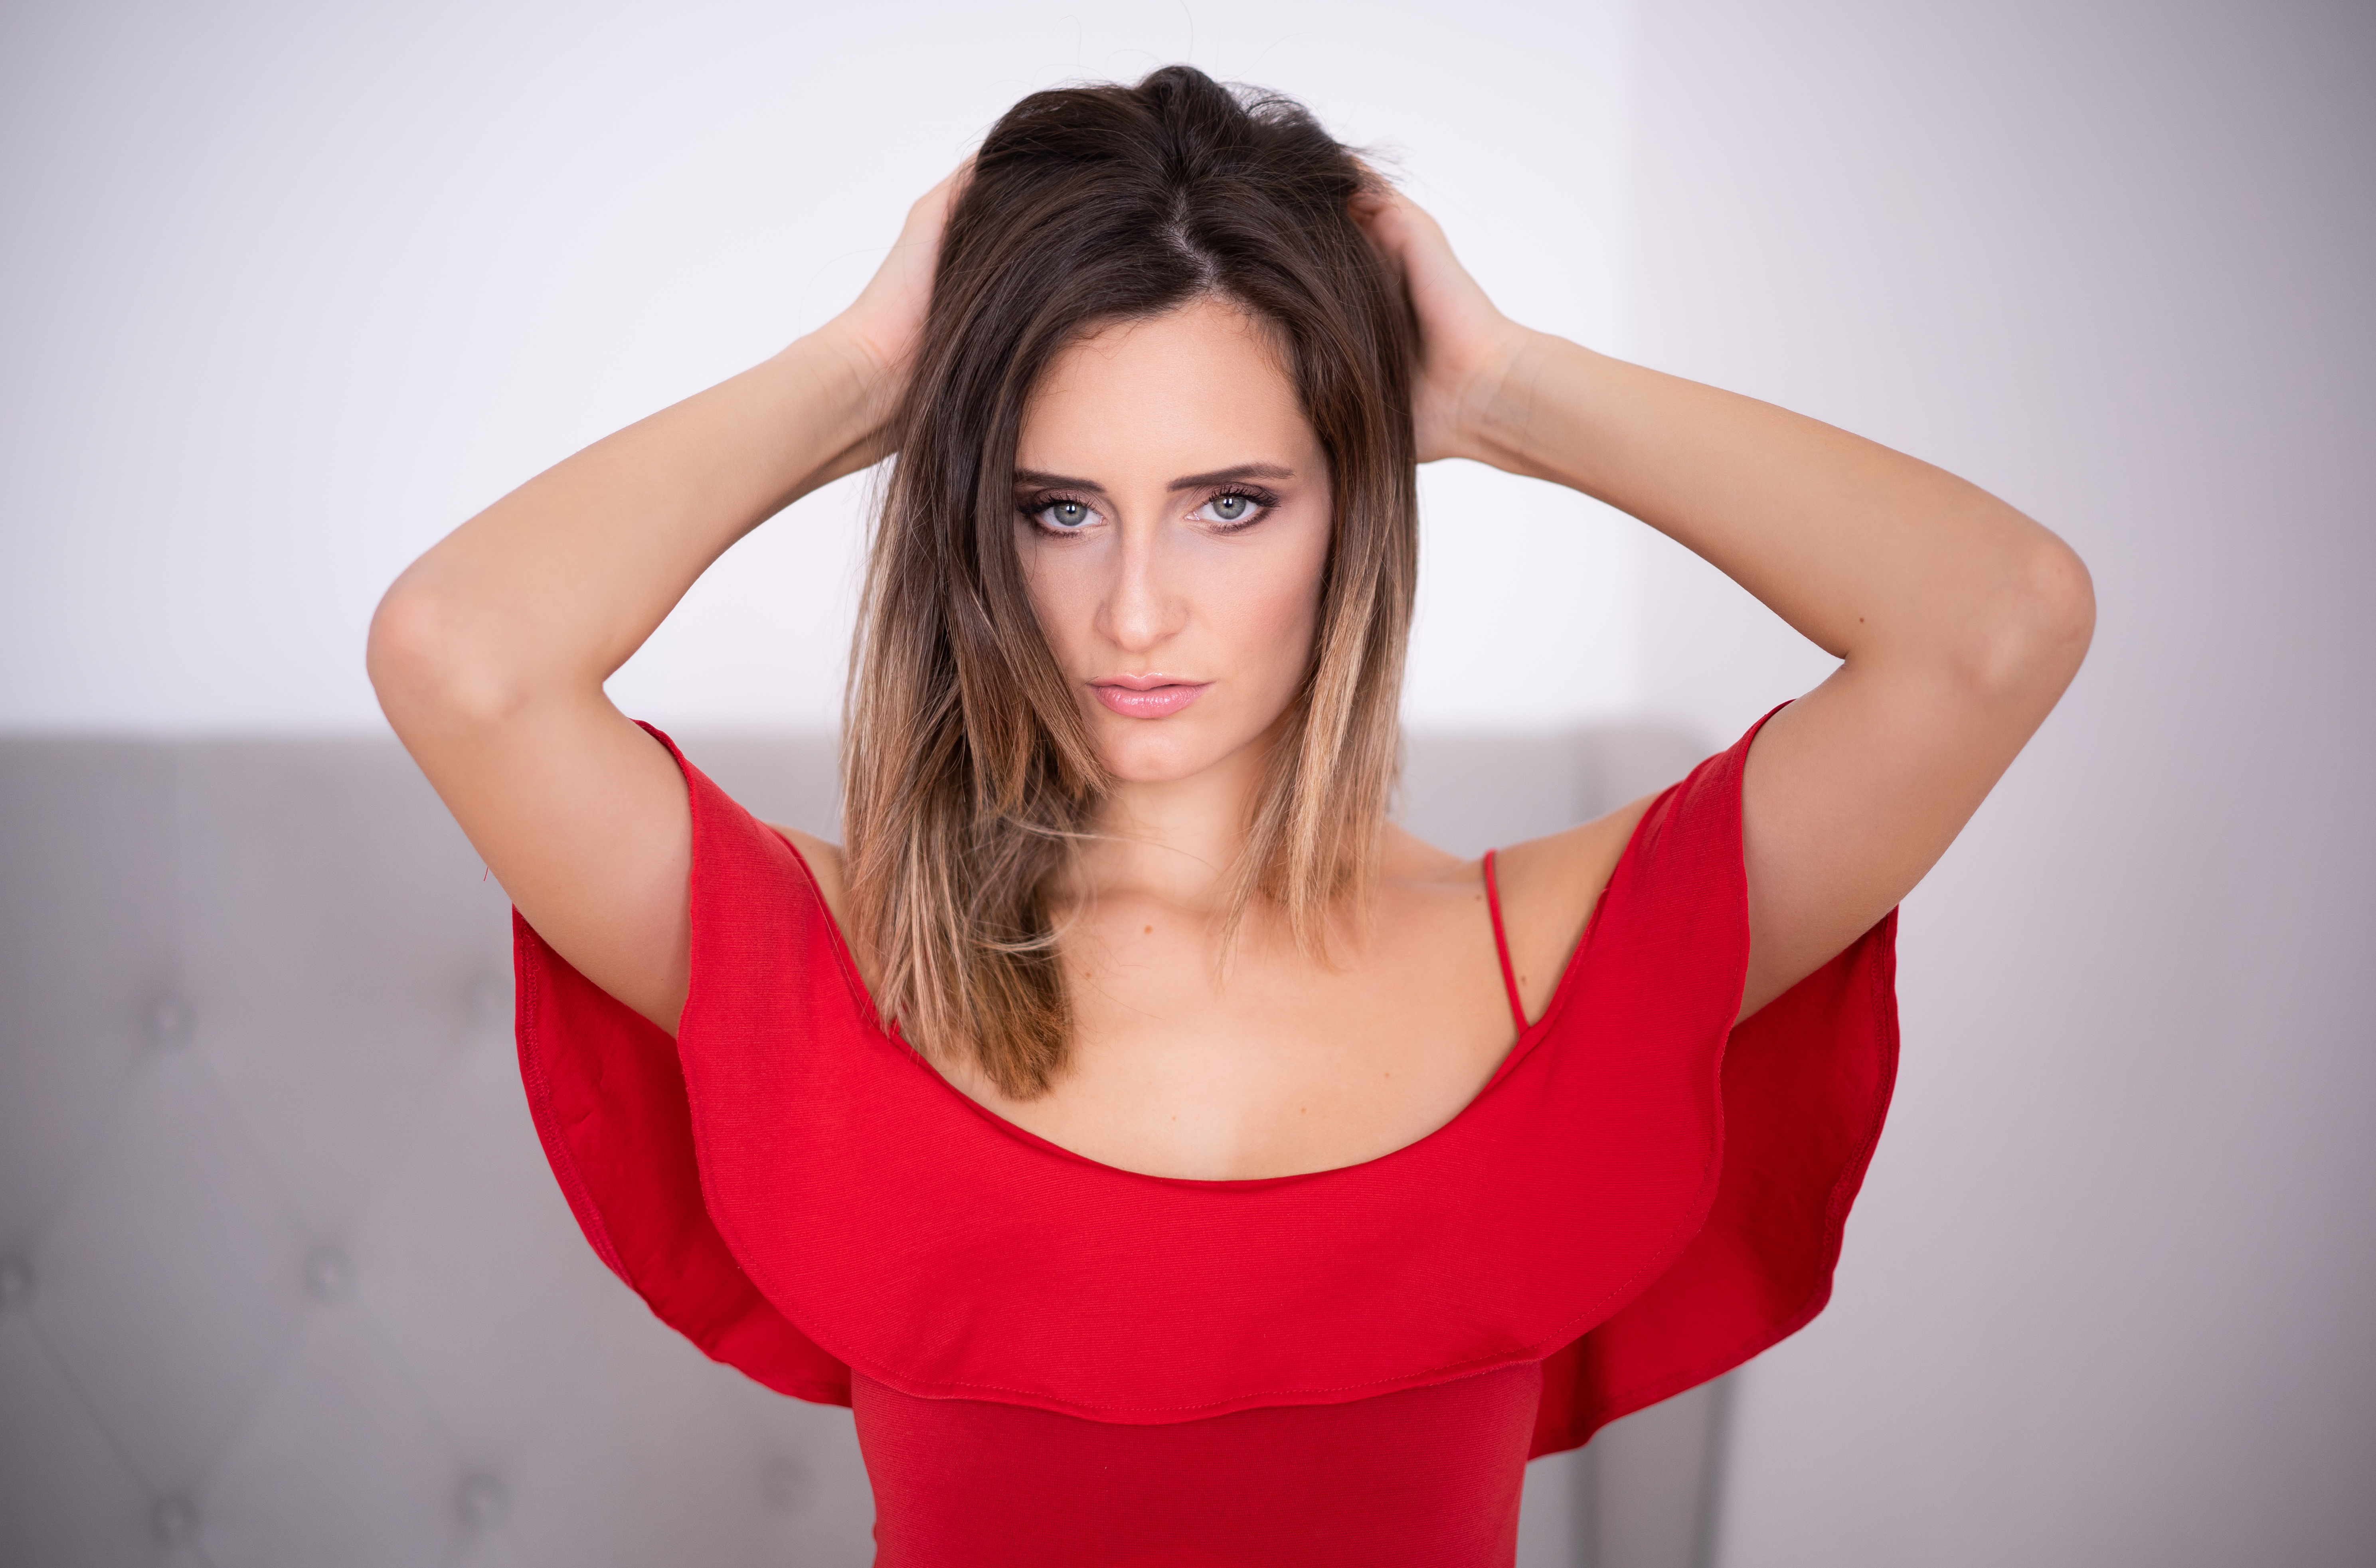 Wallpaper Beautiful girl in a red dress with hands in hair